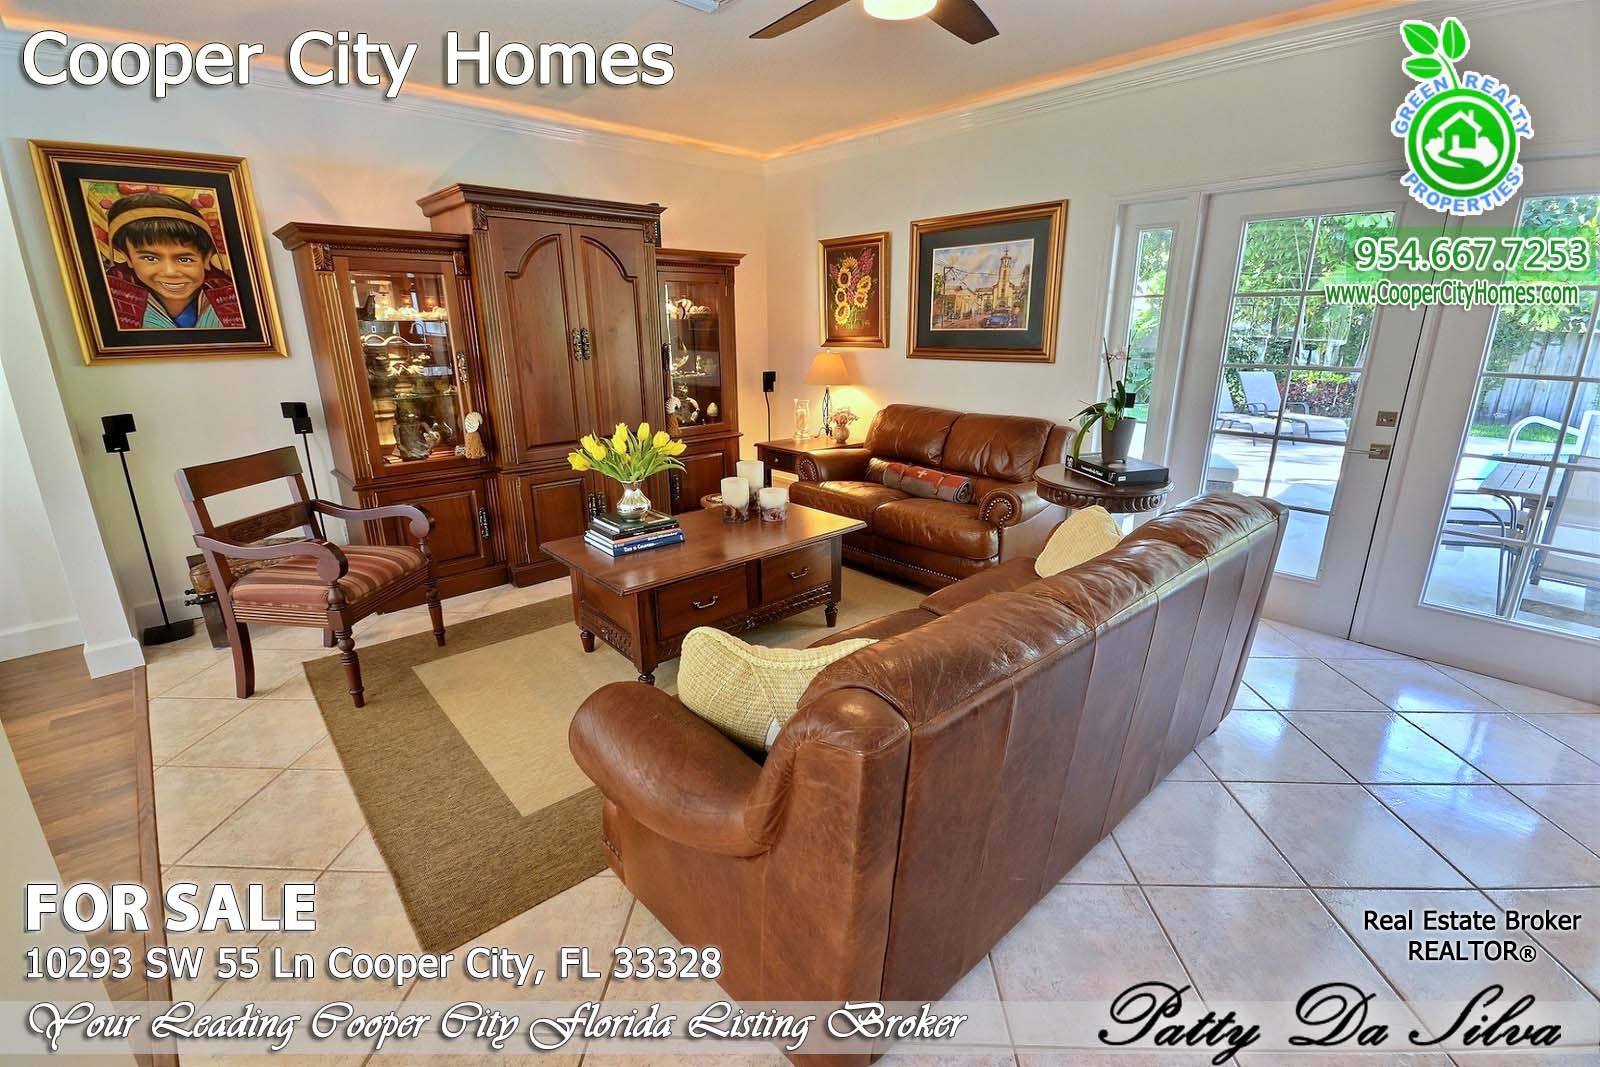 10293 - Cooper City Homes For Sale (11)